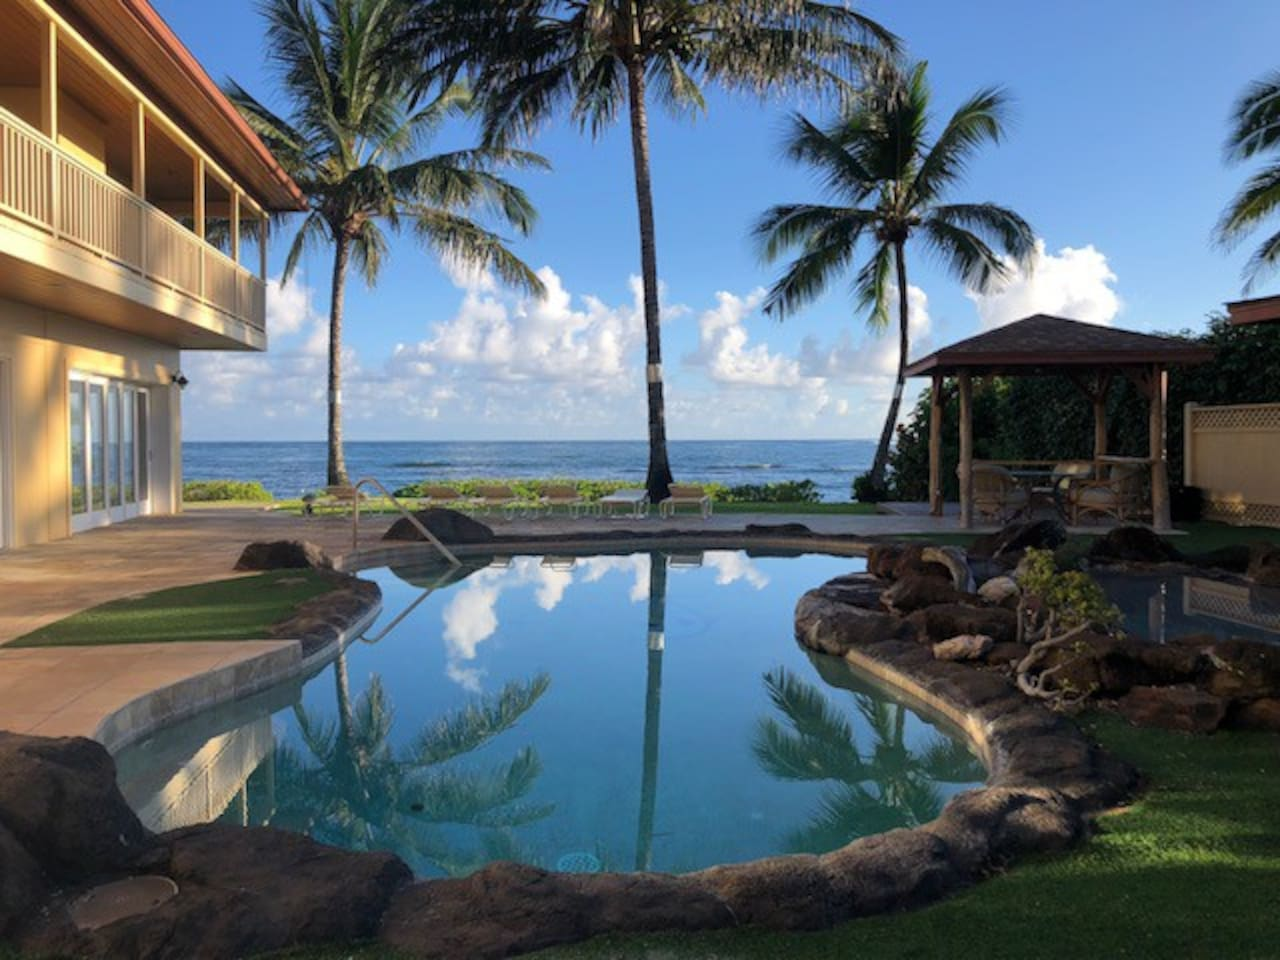 Private Ocean Front Estate with Pool to Ocean in just a few steps